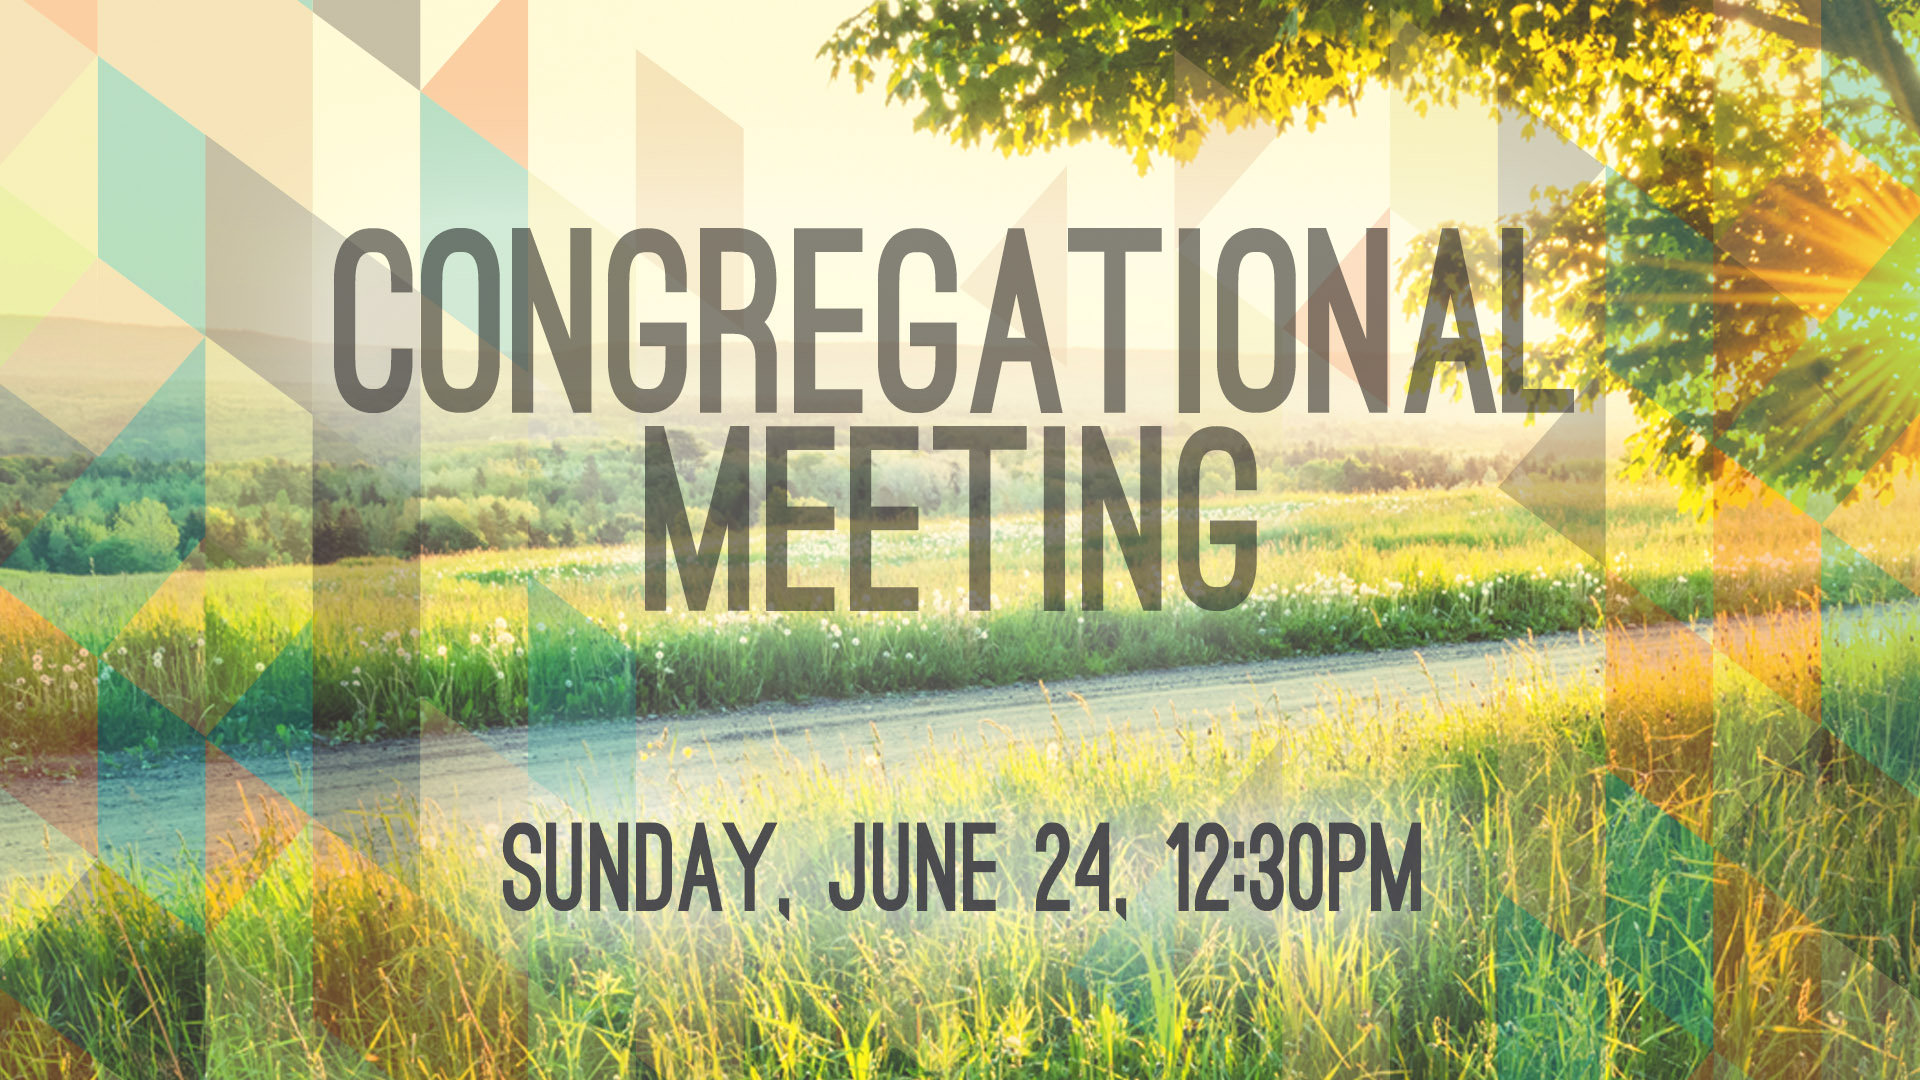 Congregational meeting hd